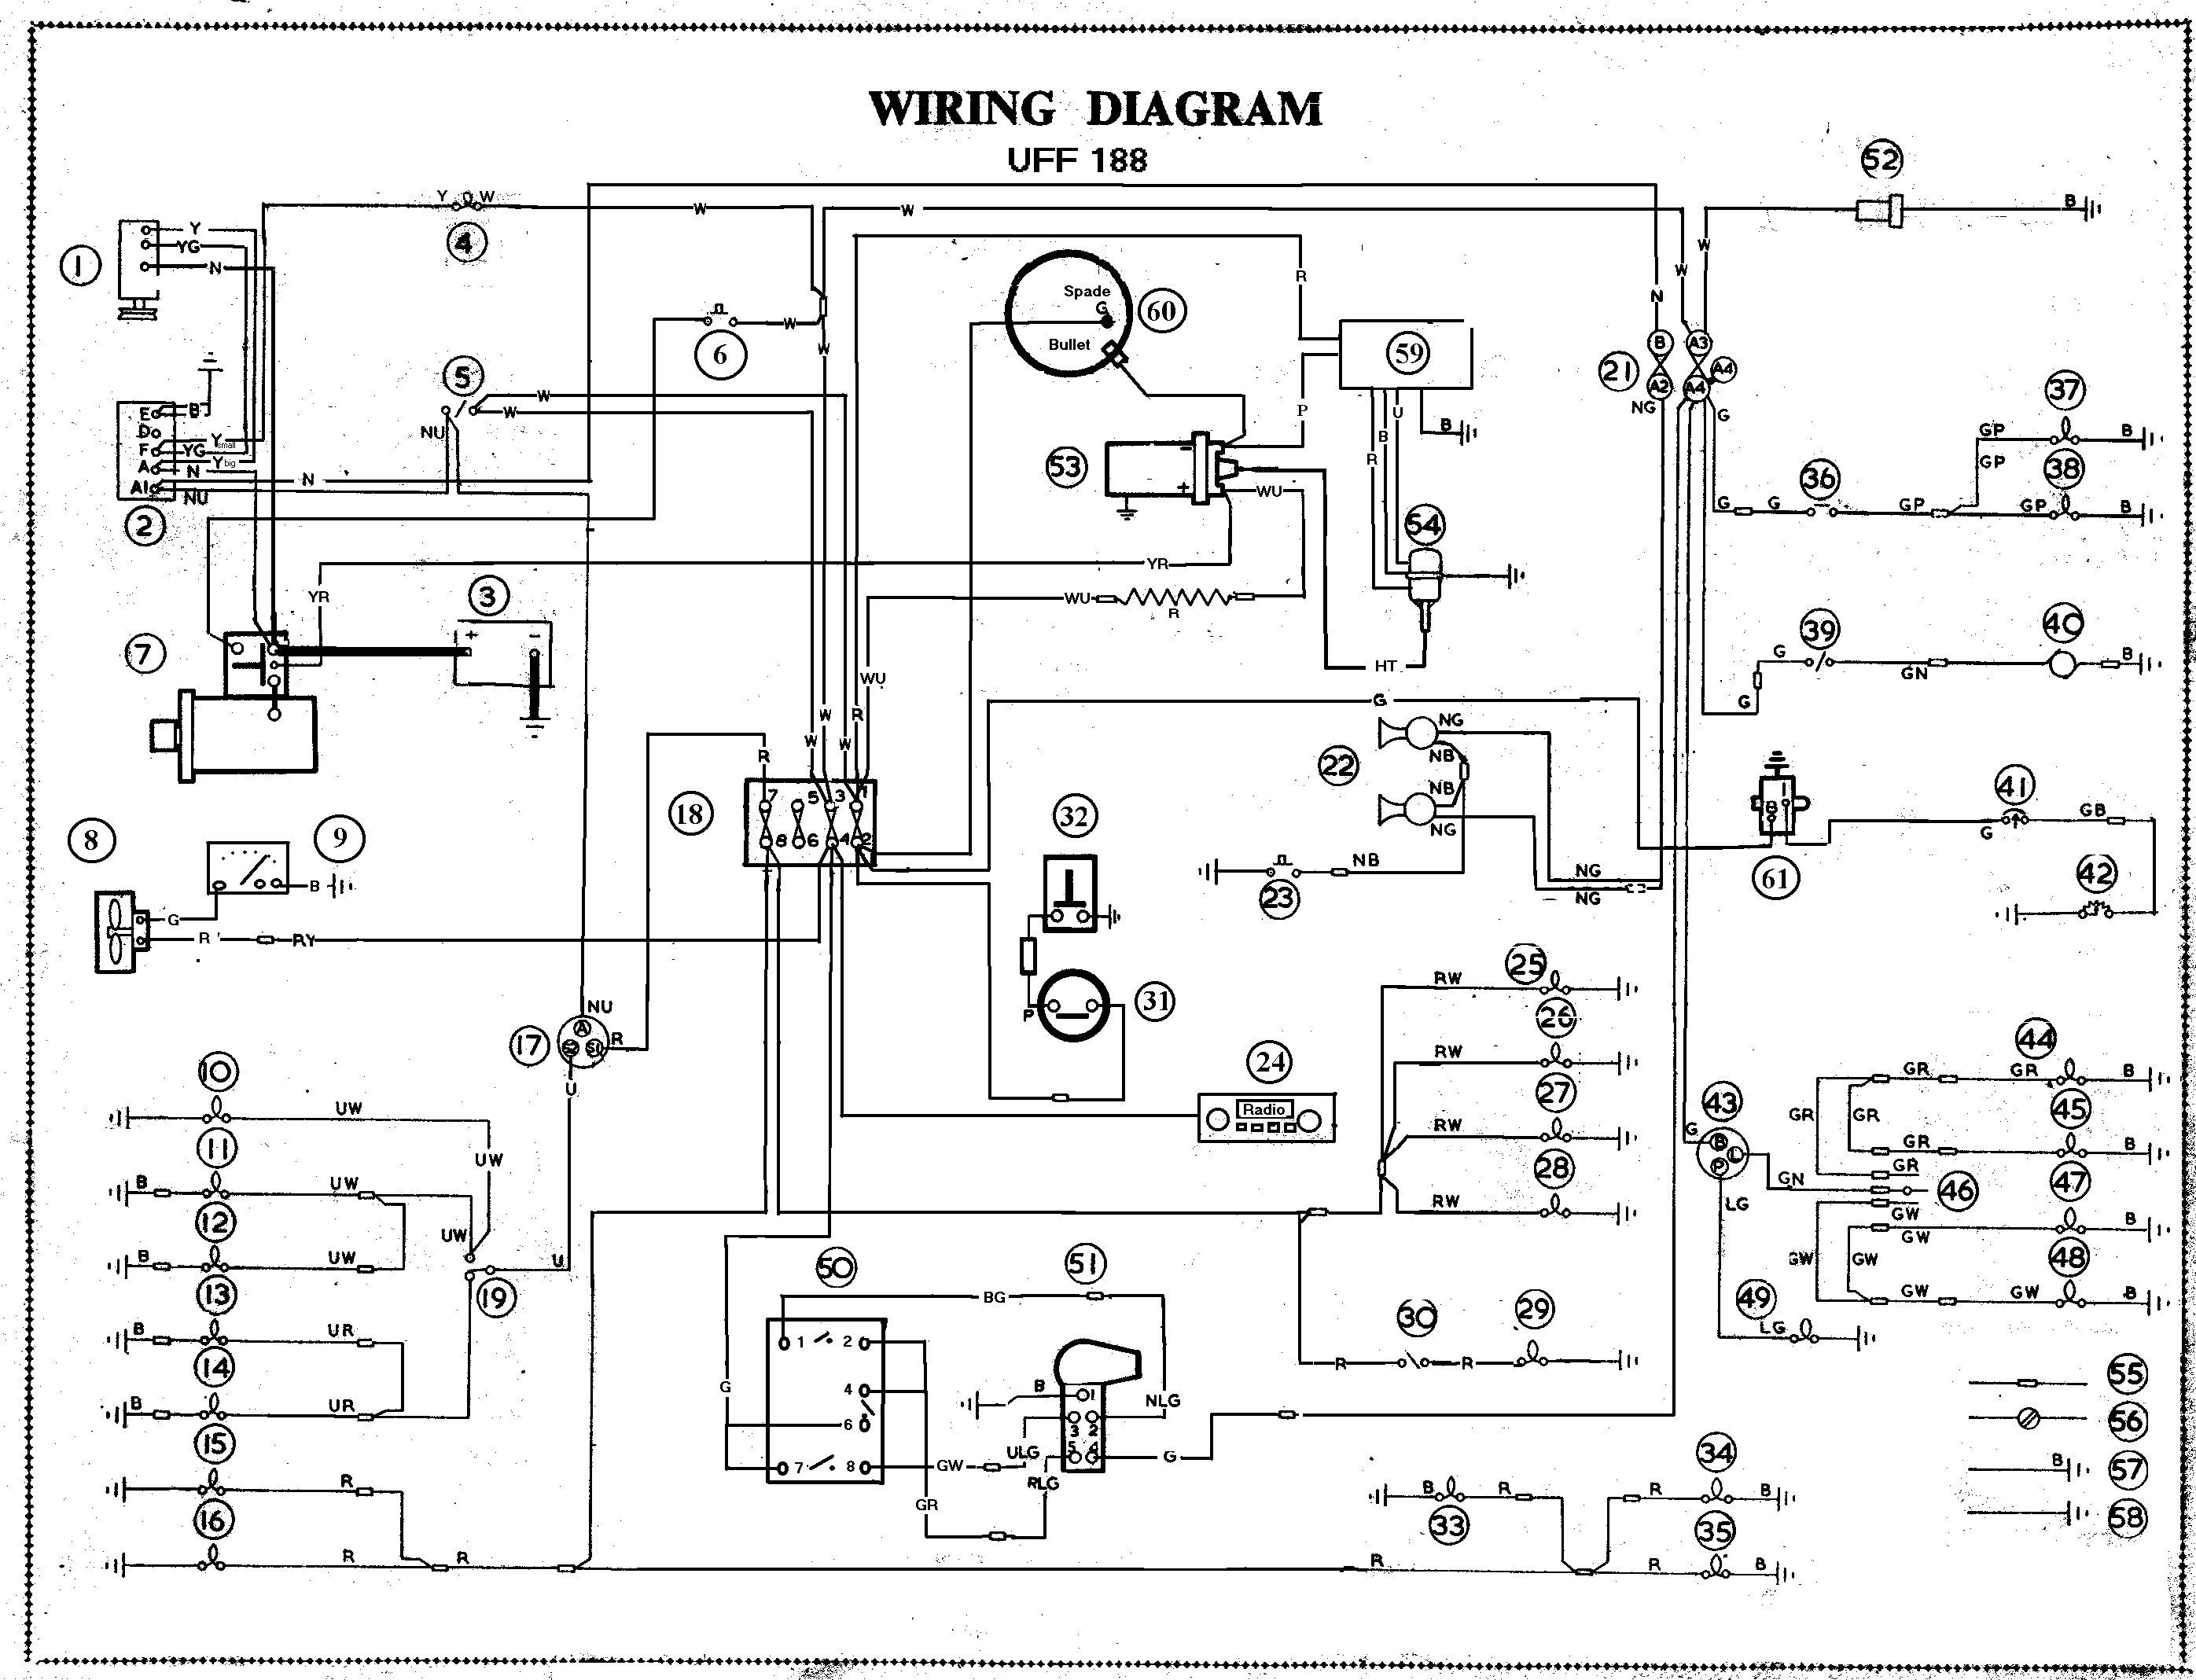 The Best 12 Way To Read Auto Wiring Diagrams Ideas Https Bacamajalah Com The Best 12 Wa Electrical Diagram Electrical Wiring Diagram Trailer Wiring Diagram